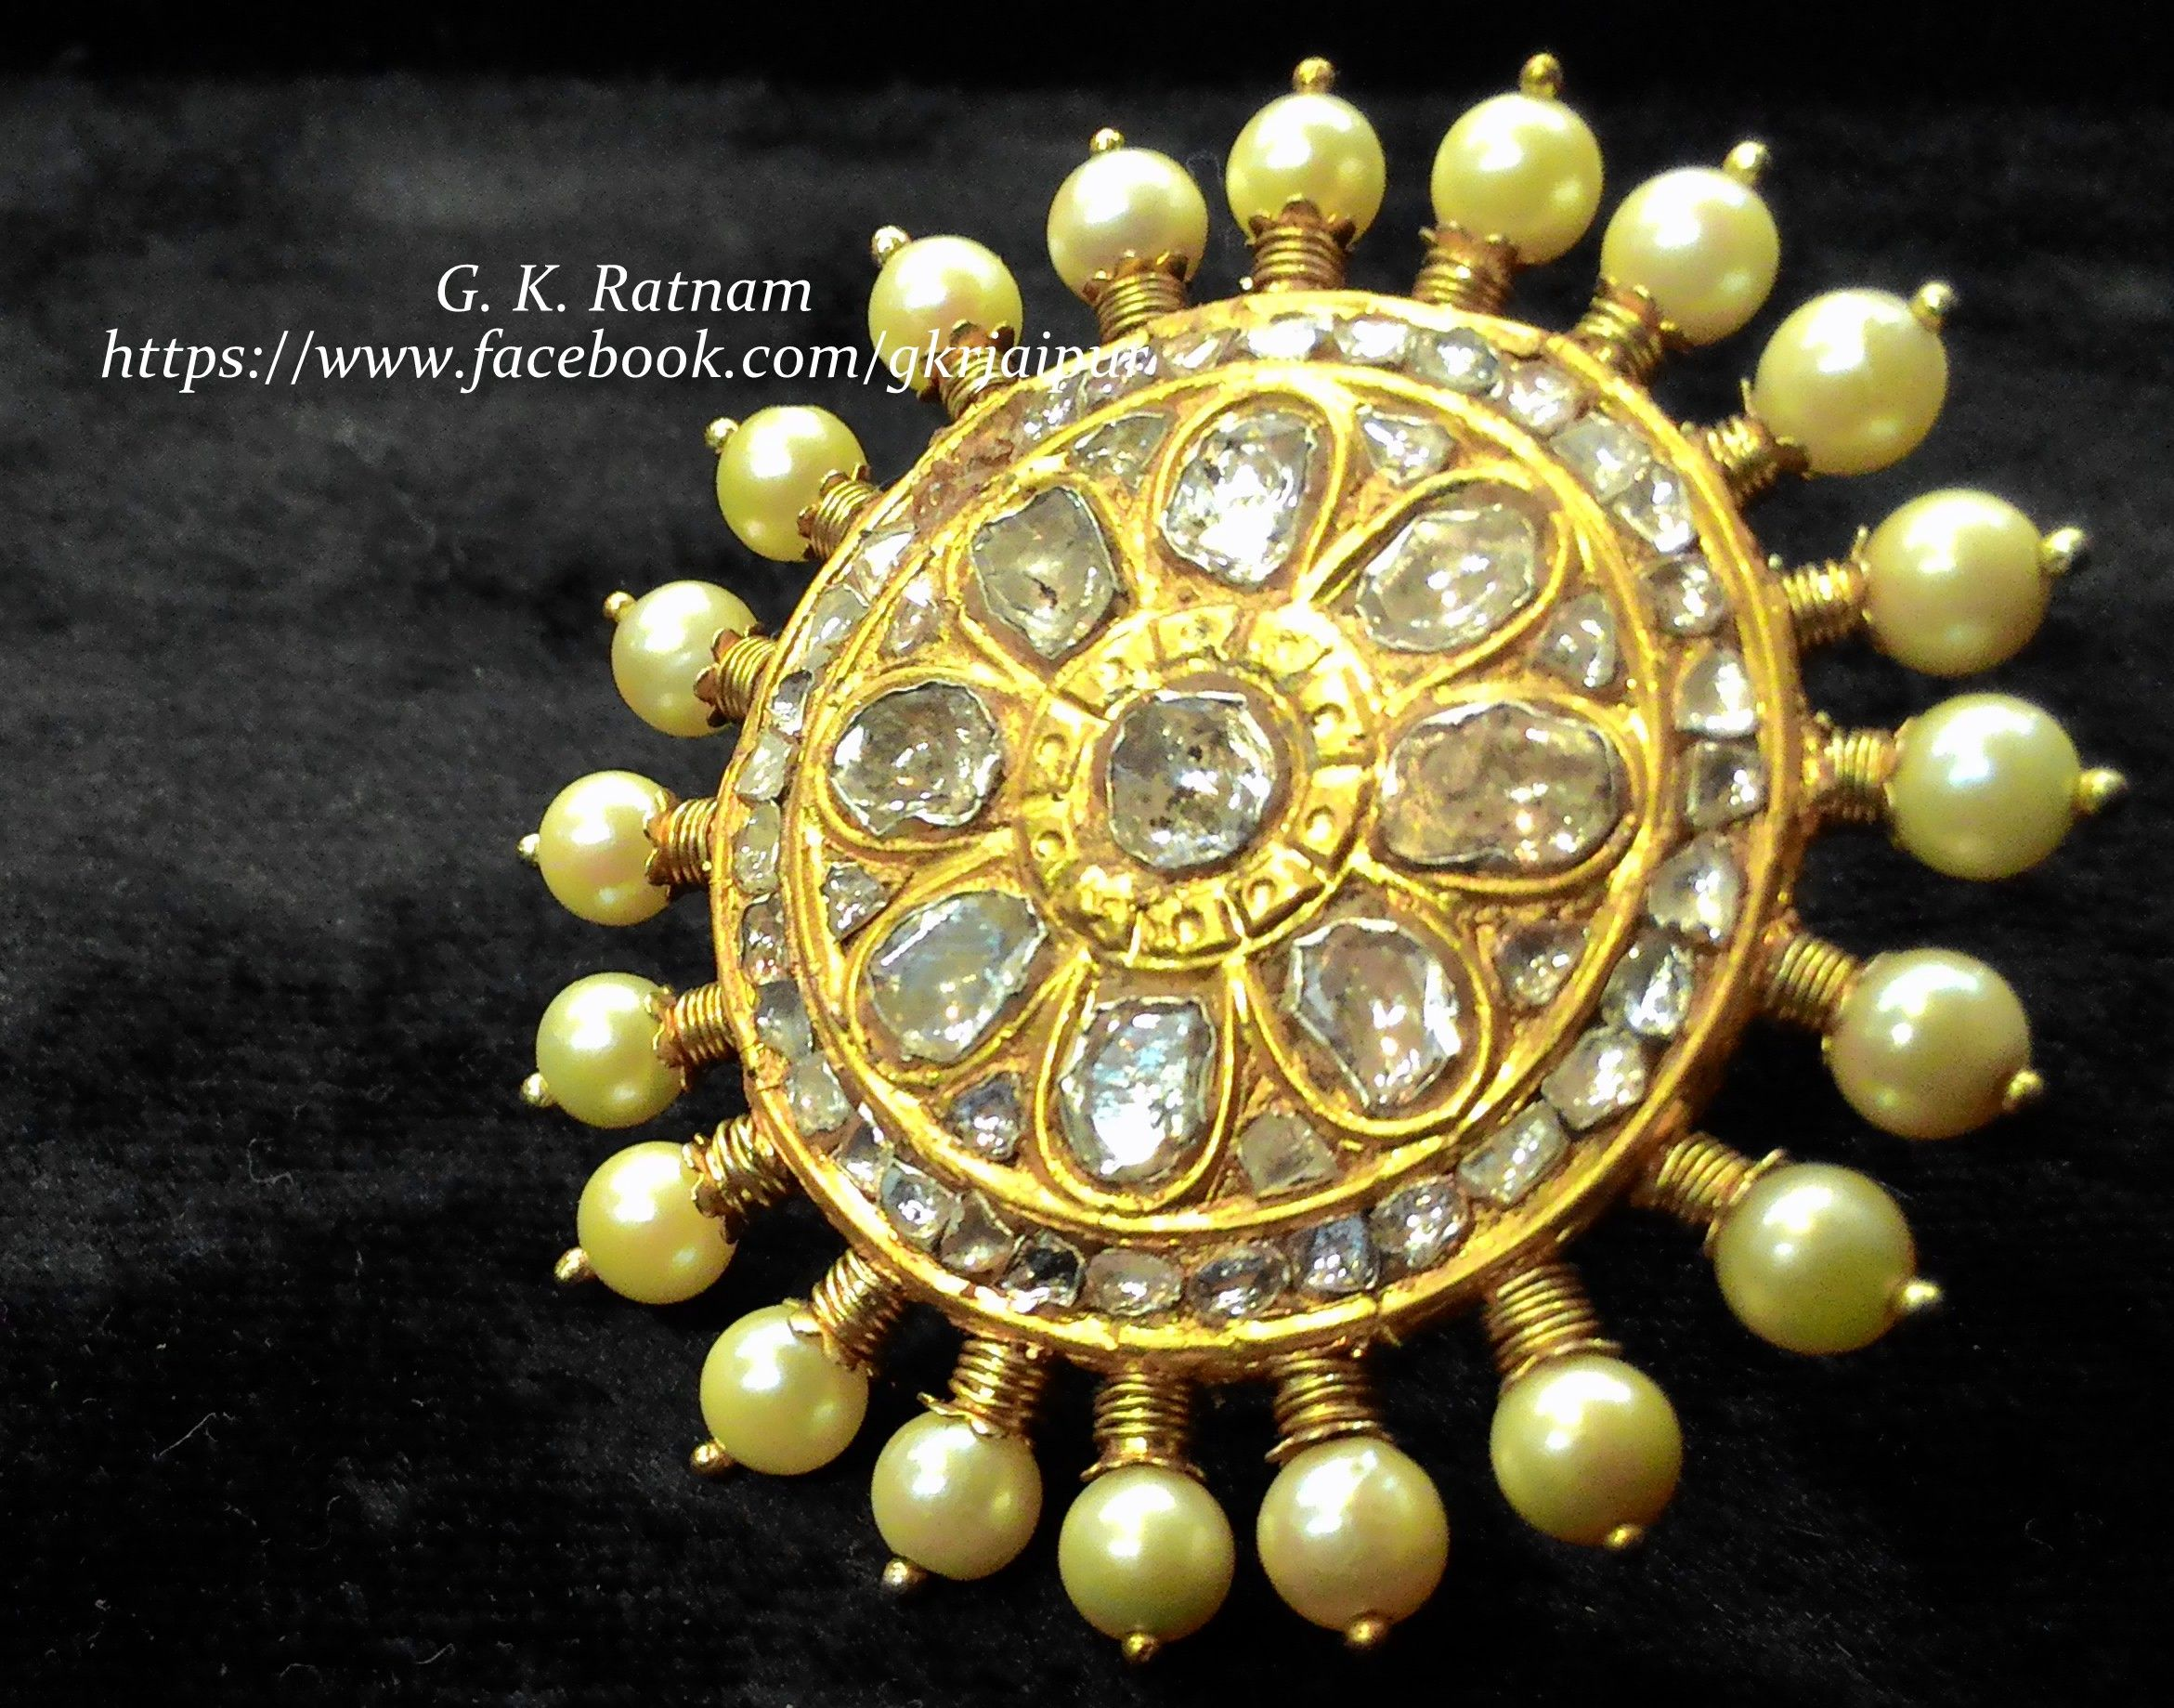 An Elegant Diamond Polki Cocktail Ring With Double Coated Pearls  Kundan  Meena Jewelry  Bridal